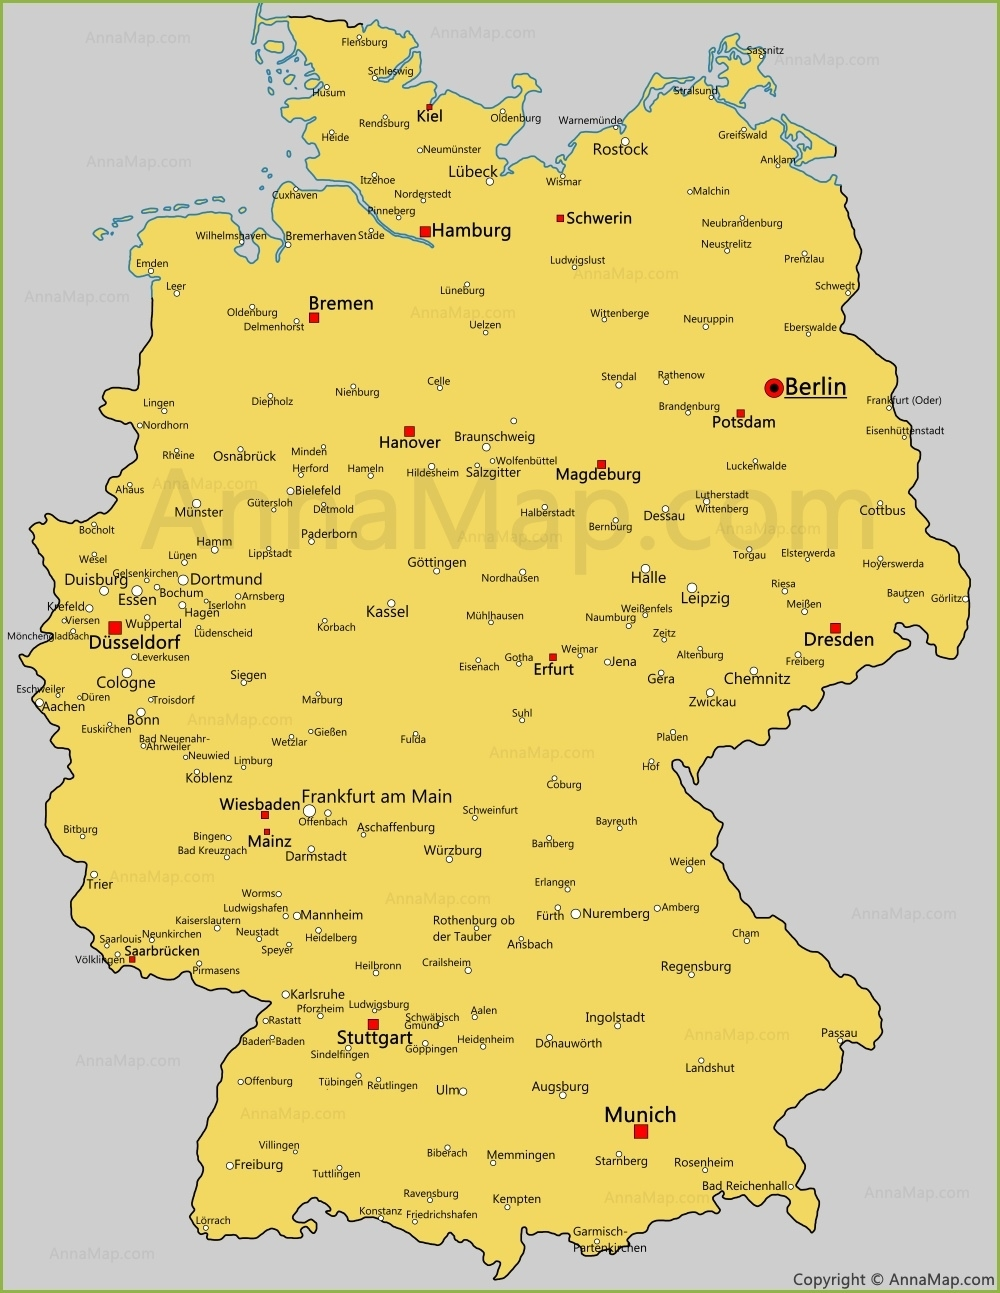 Germany Cities Map | Cities And Towns In Germany - Annamap pertaining to Map Of Germany With Cities And Towns